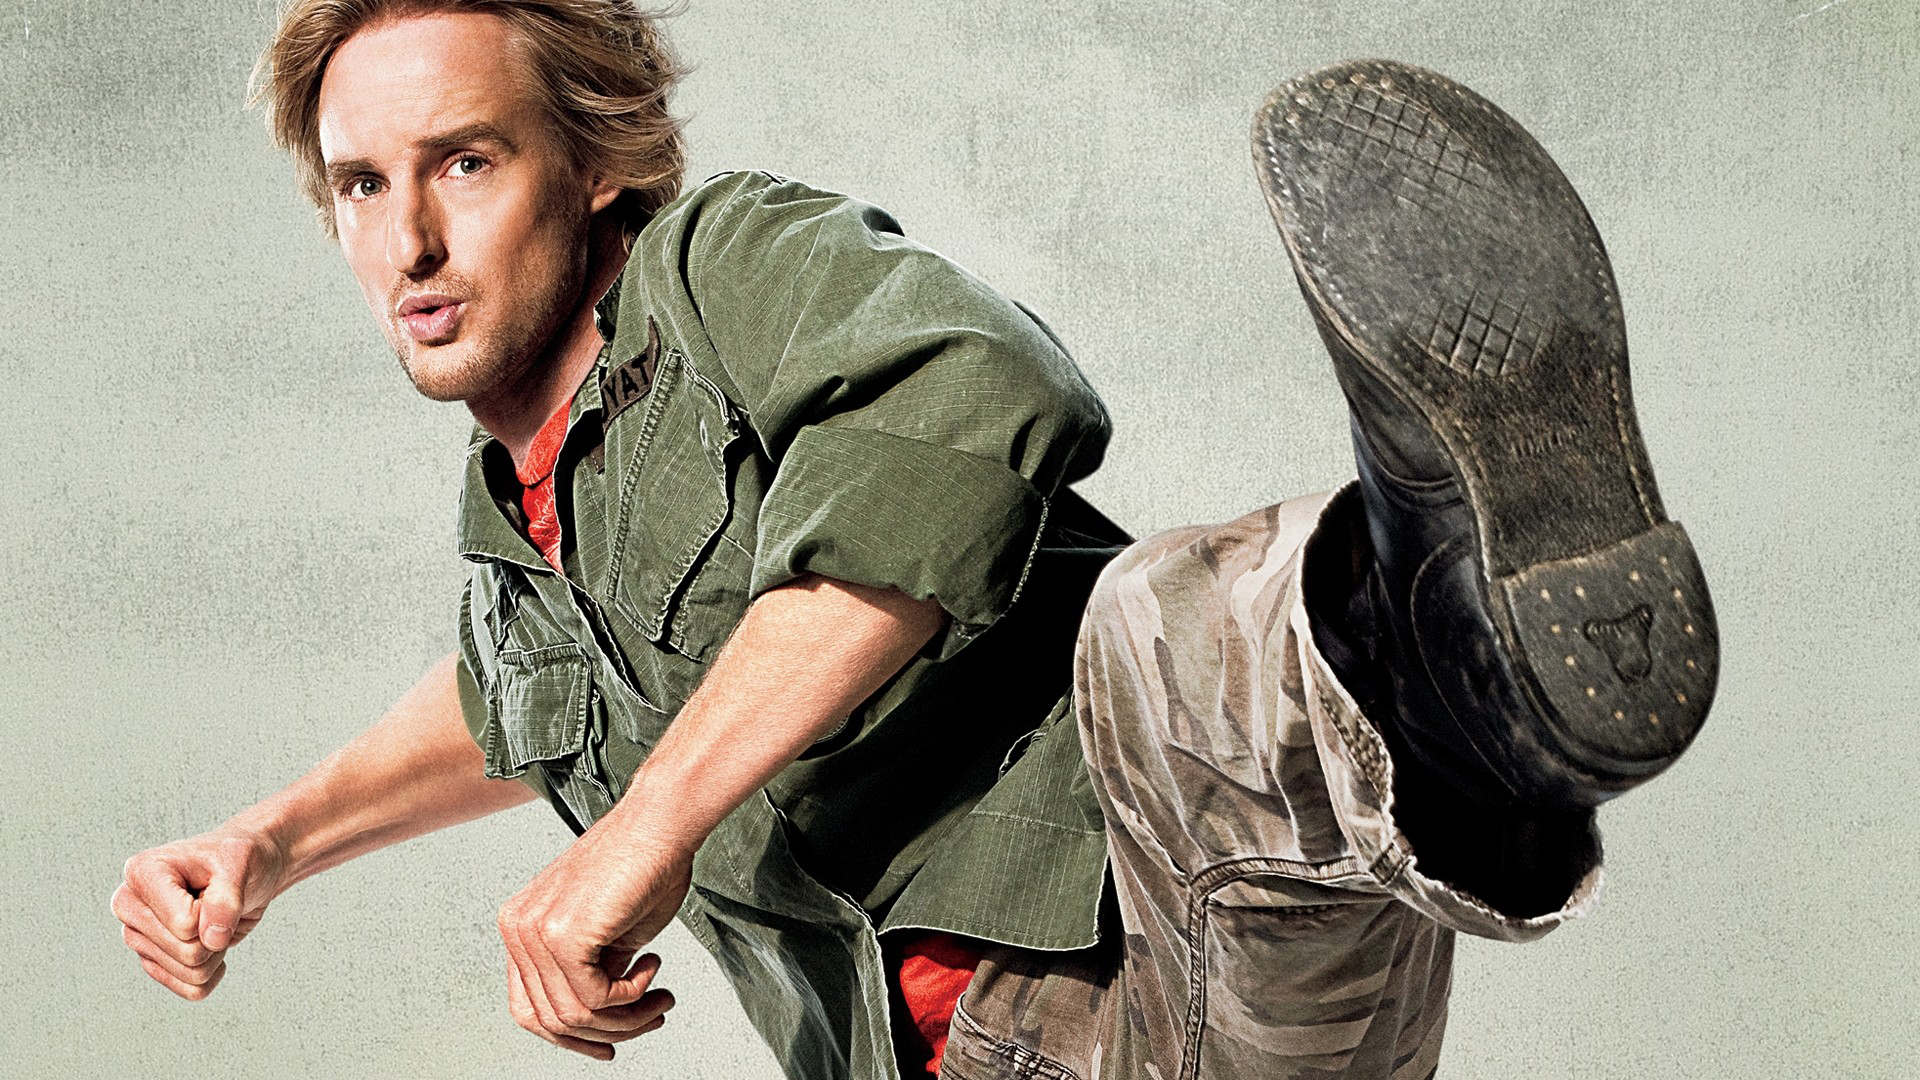 Owen Wilson Wallpapers and Background Images   stmednet 1920x1080